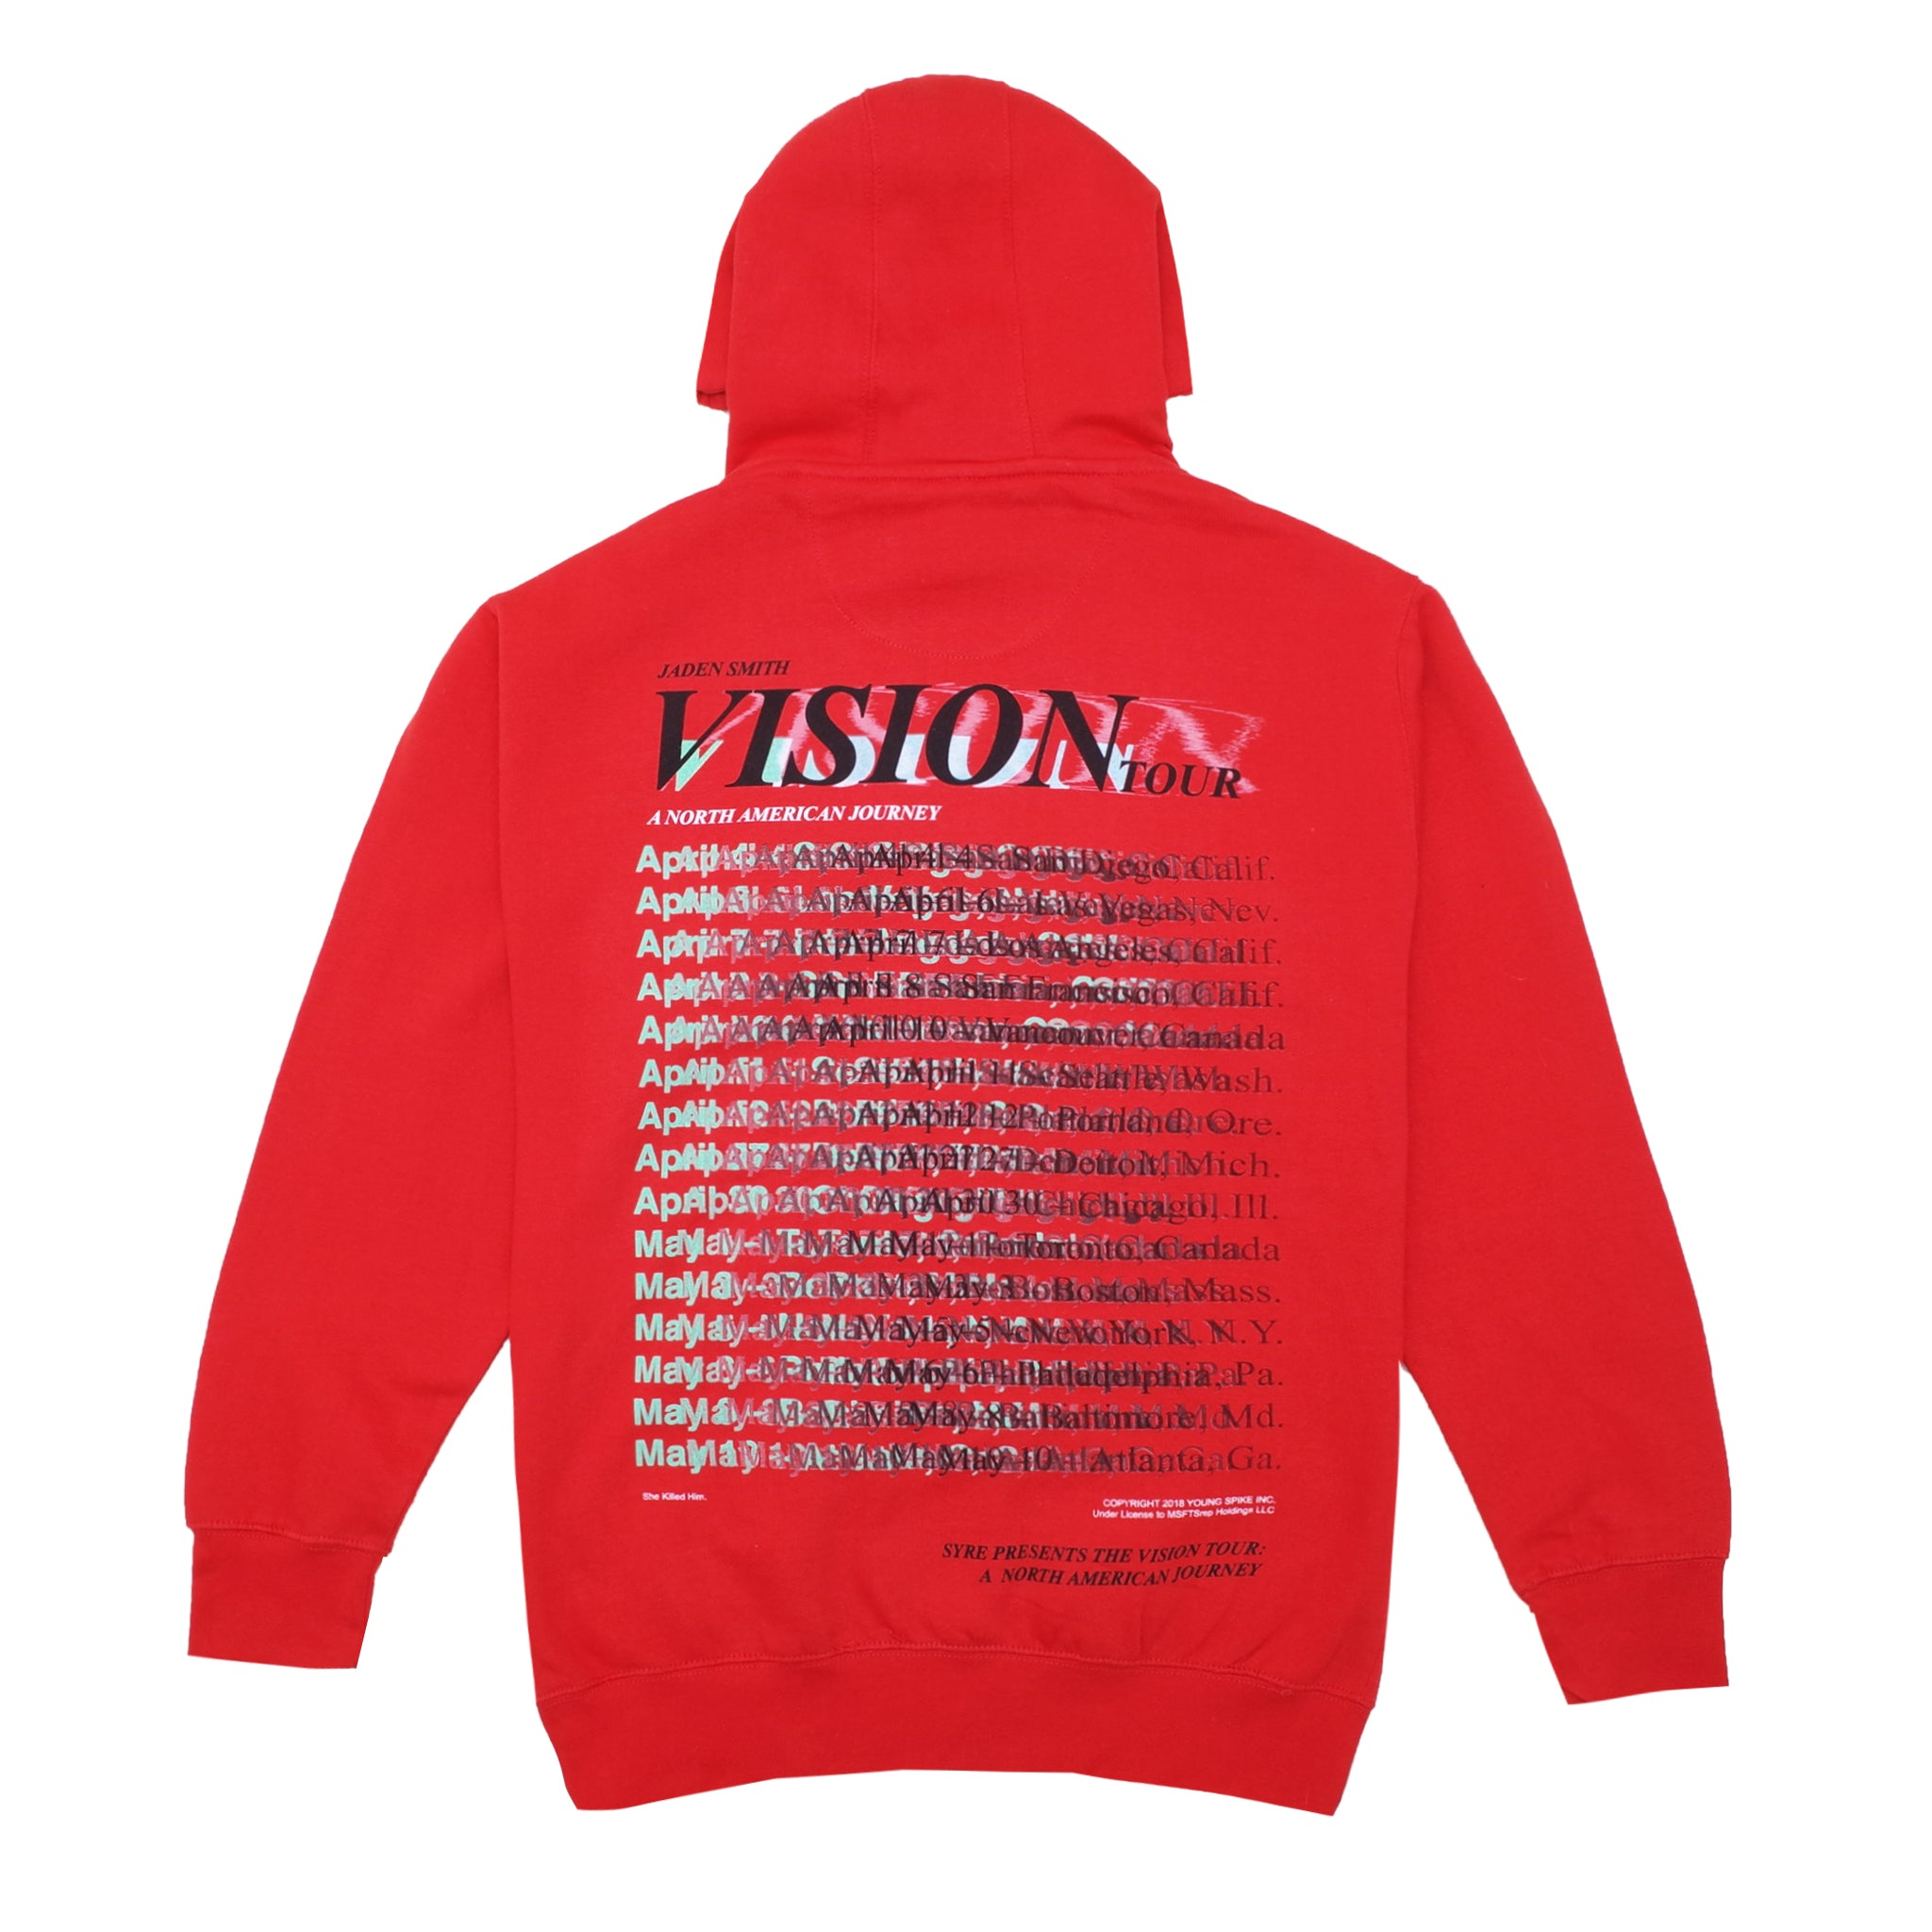 Vision Tour Hoodie, Red